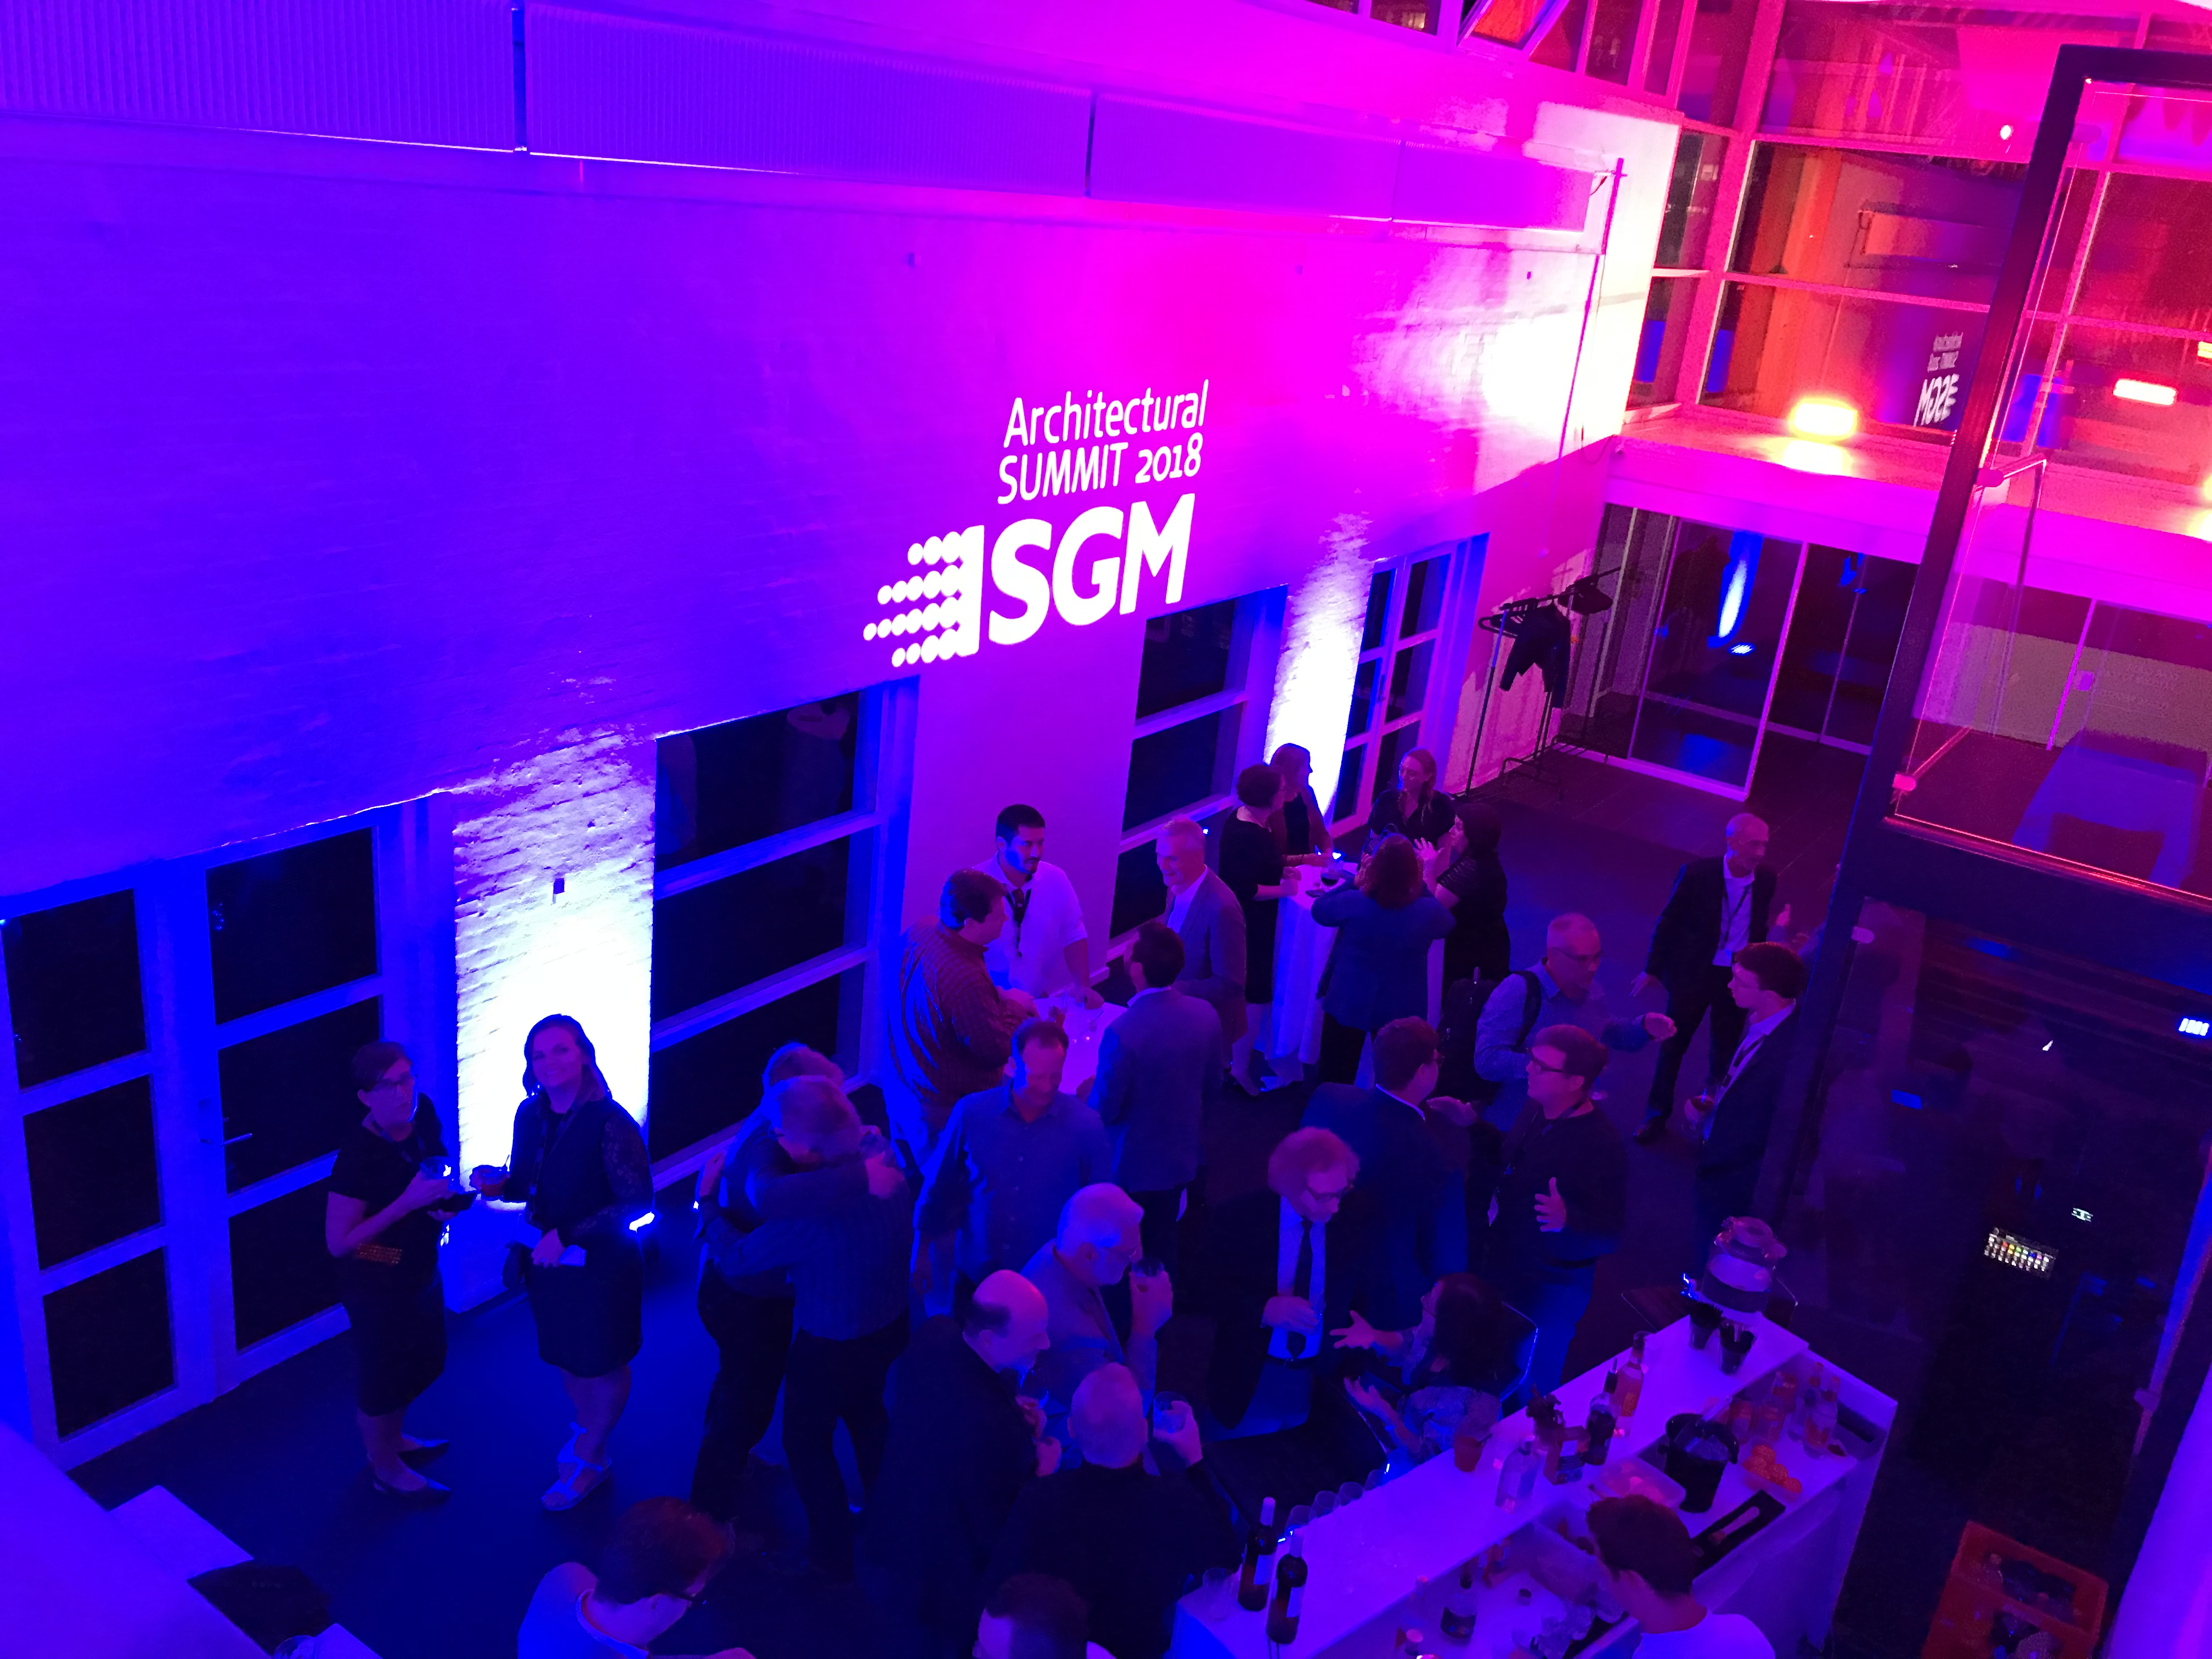 SGM Architectural Summit